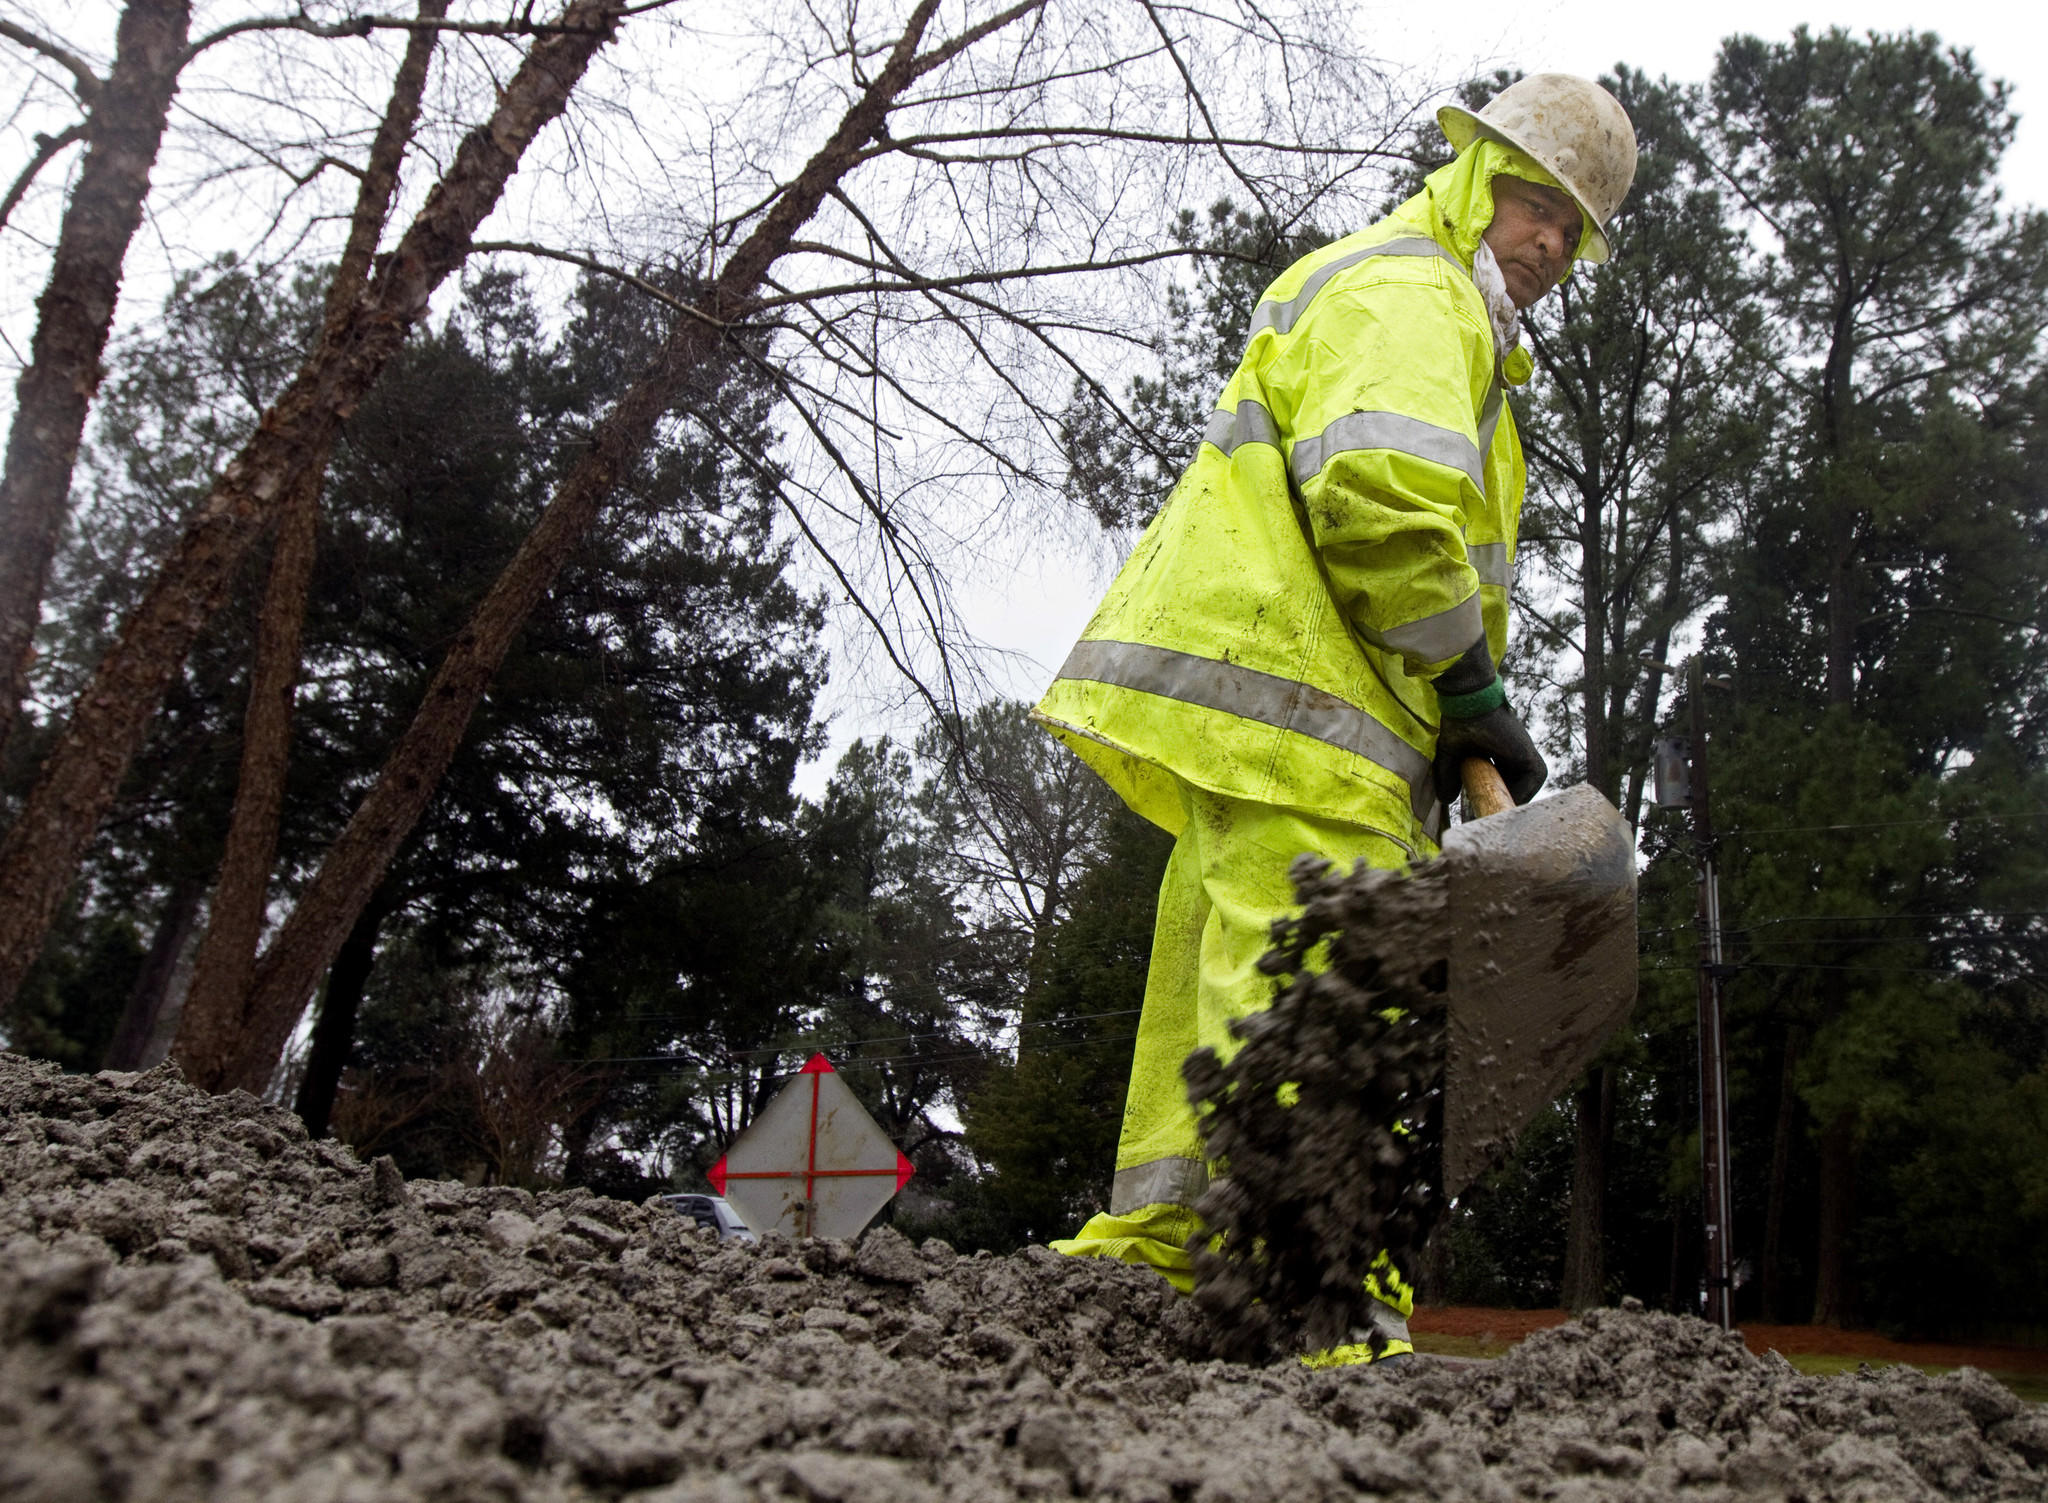 Rubin Aguon, a senior pipe layer with Newport News Waterworks, covers a repaired water pipe with gravel as crews worked in damp conditions on Monday morning in Hilton Village.